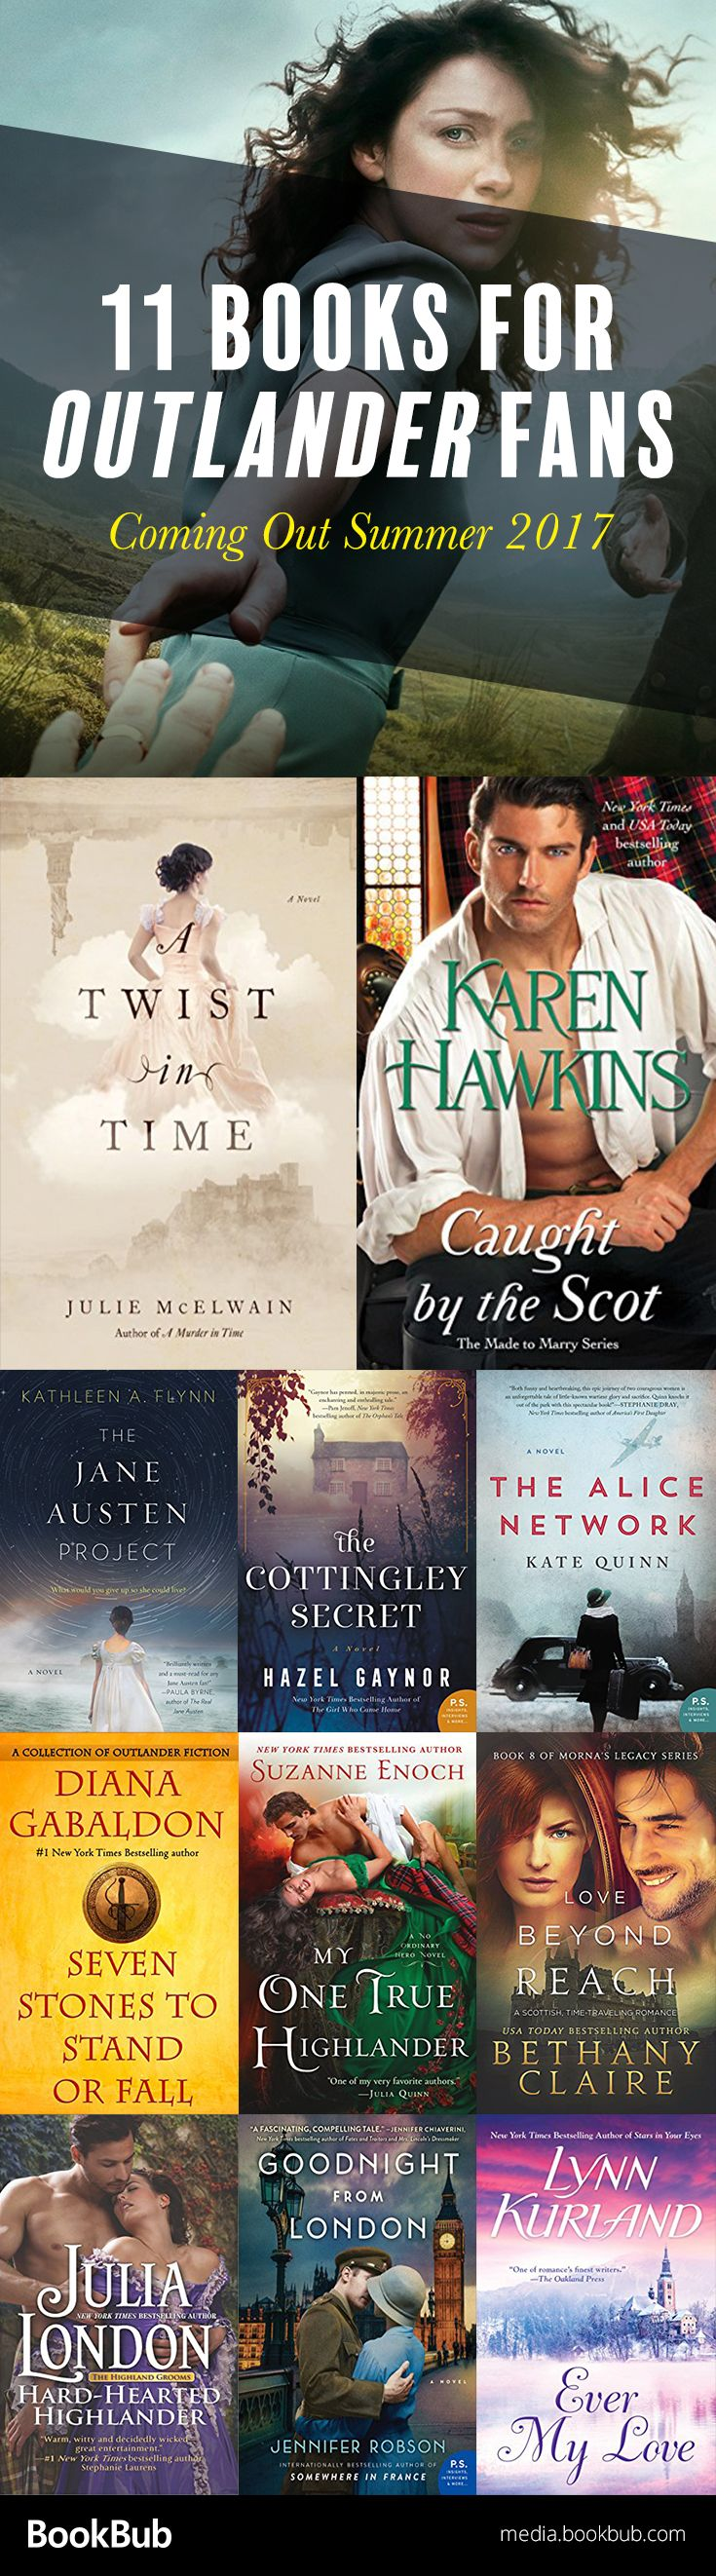 11 books if you like Outlander, including hot romances, history books, time travel novels, and other great books for women.